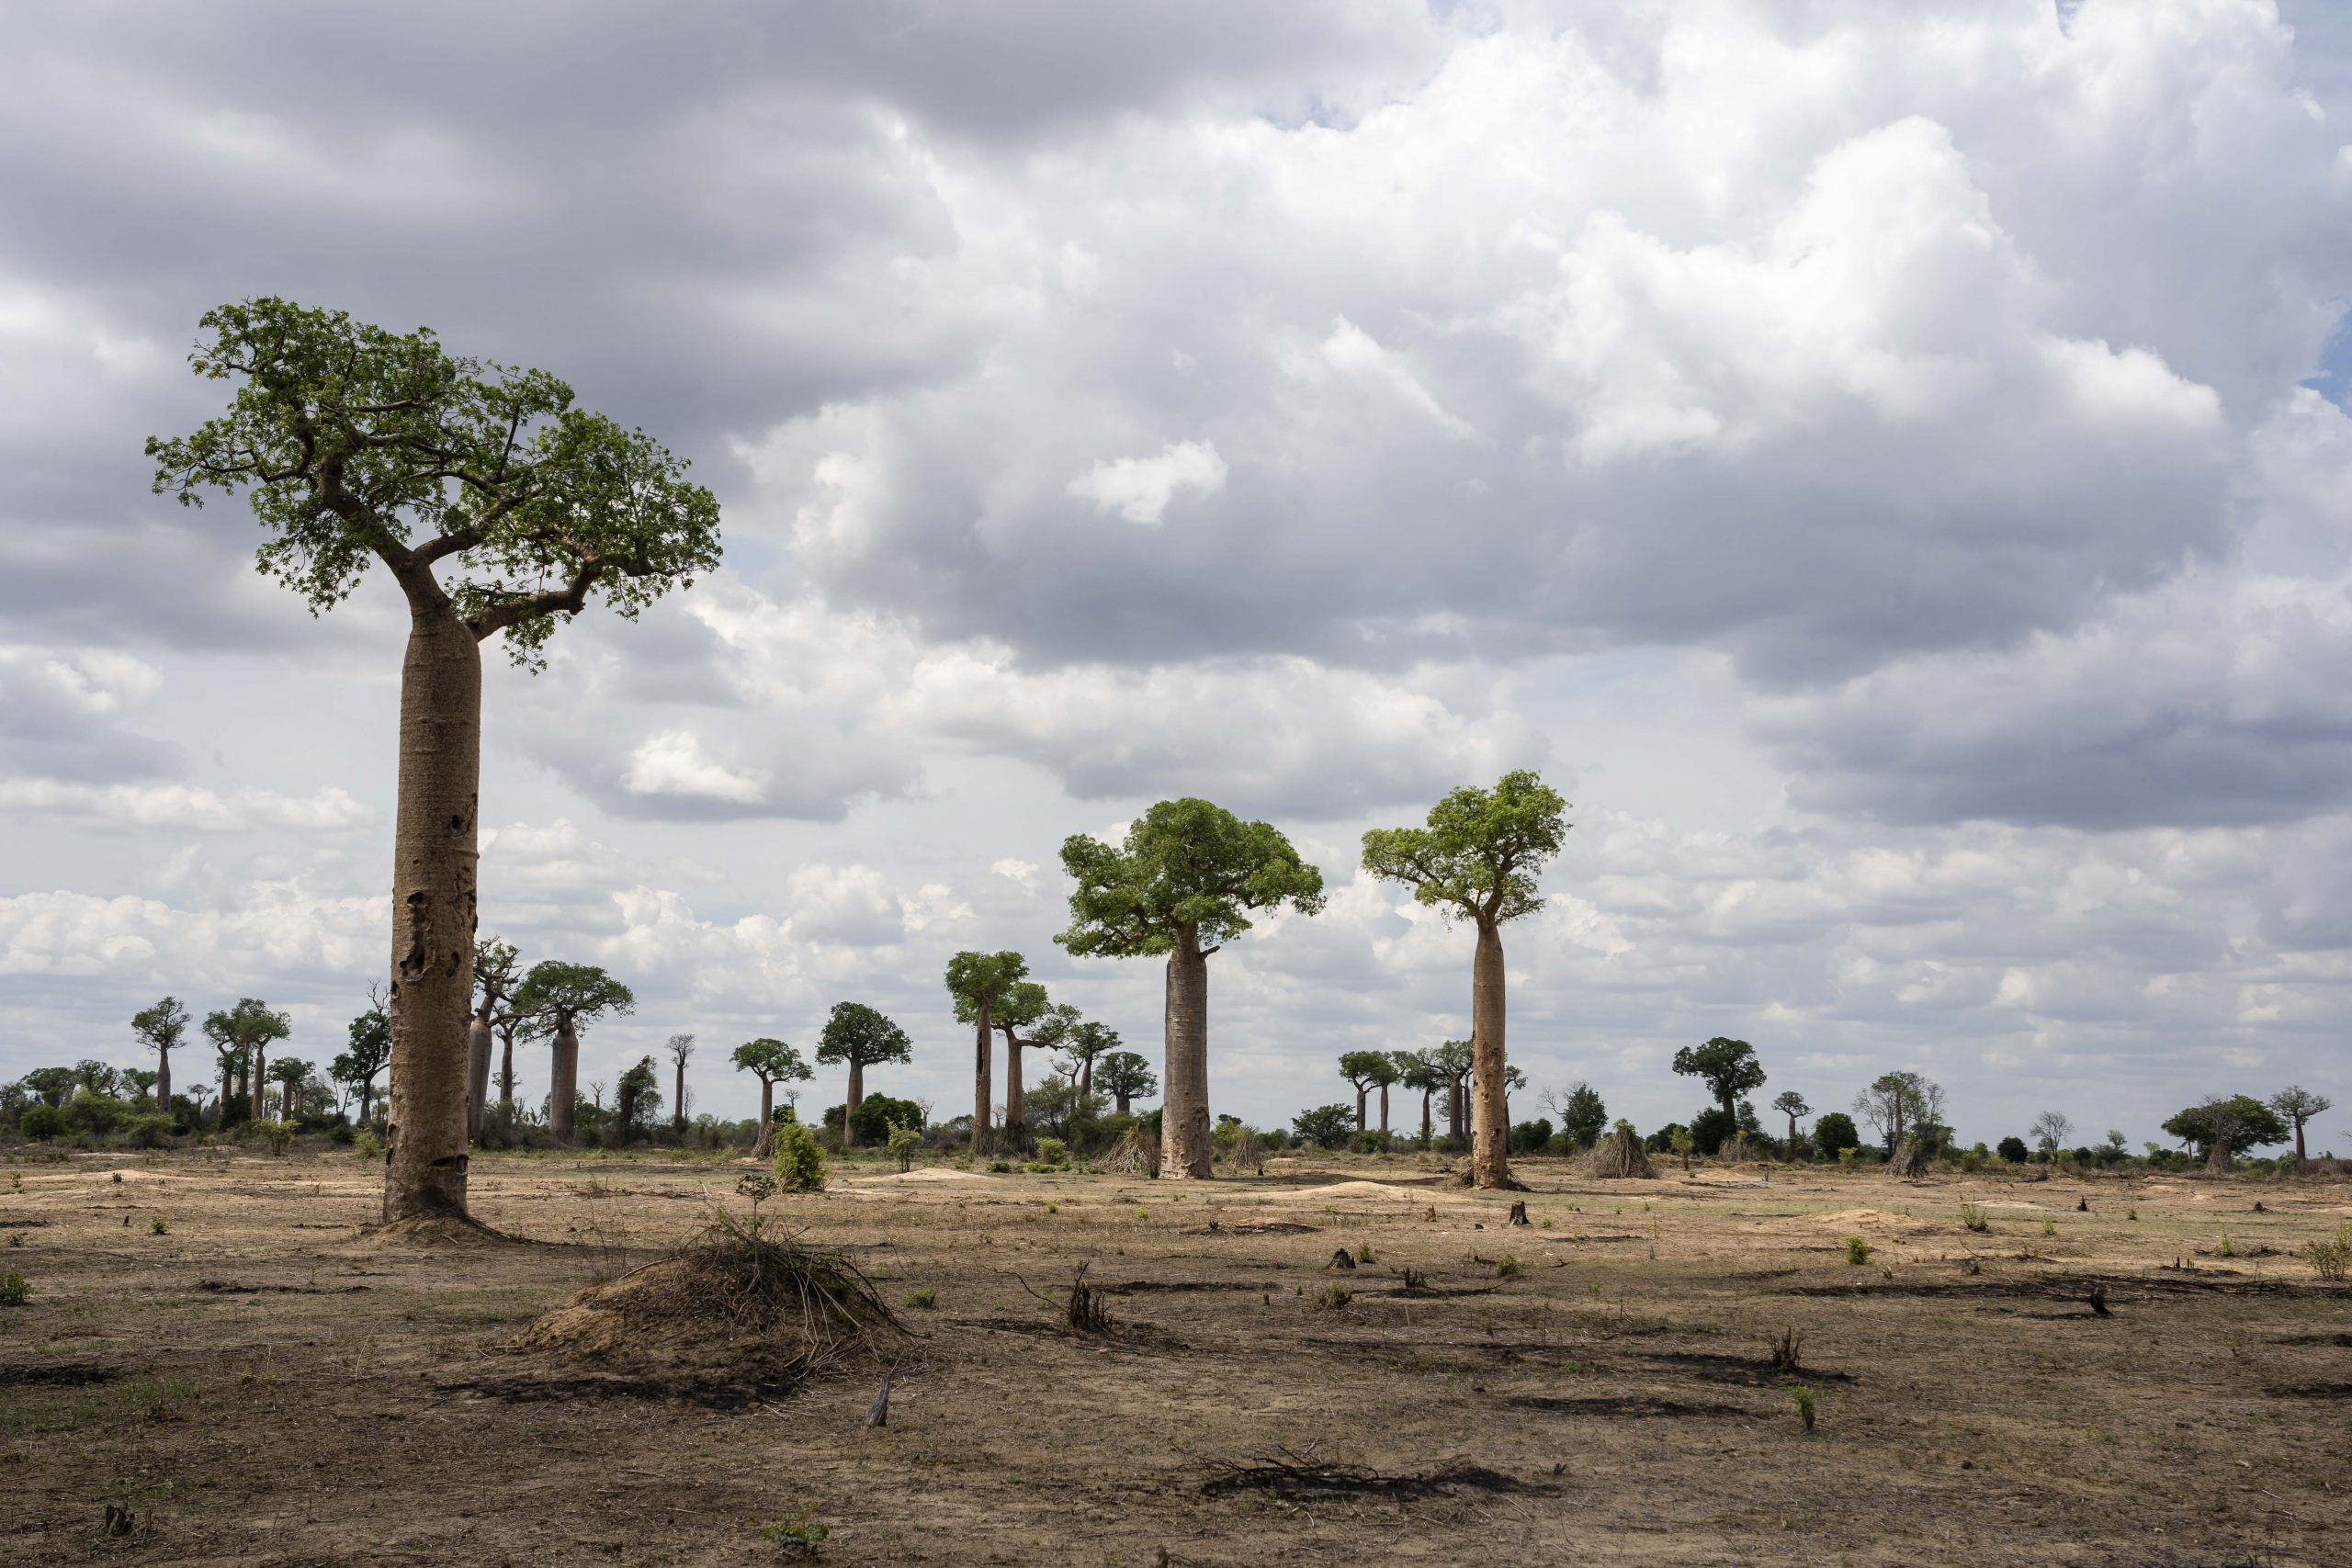 Only fire-resistant baobabs remain standing on the slashed-and-burned landscape within the Menabe Antimena Protected Area, which has been devastated by such practices in recent years.